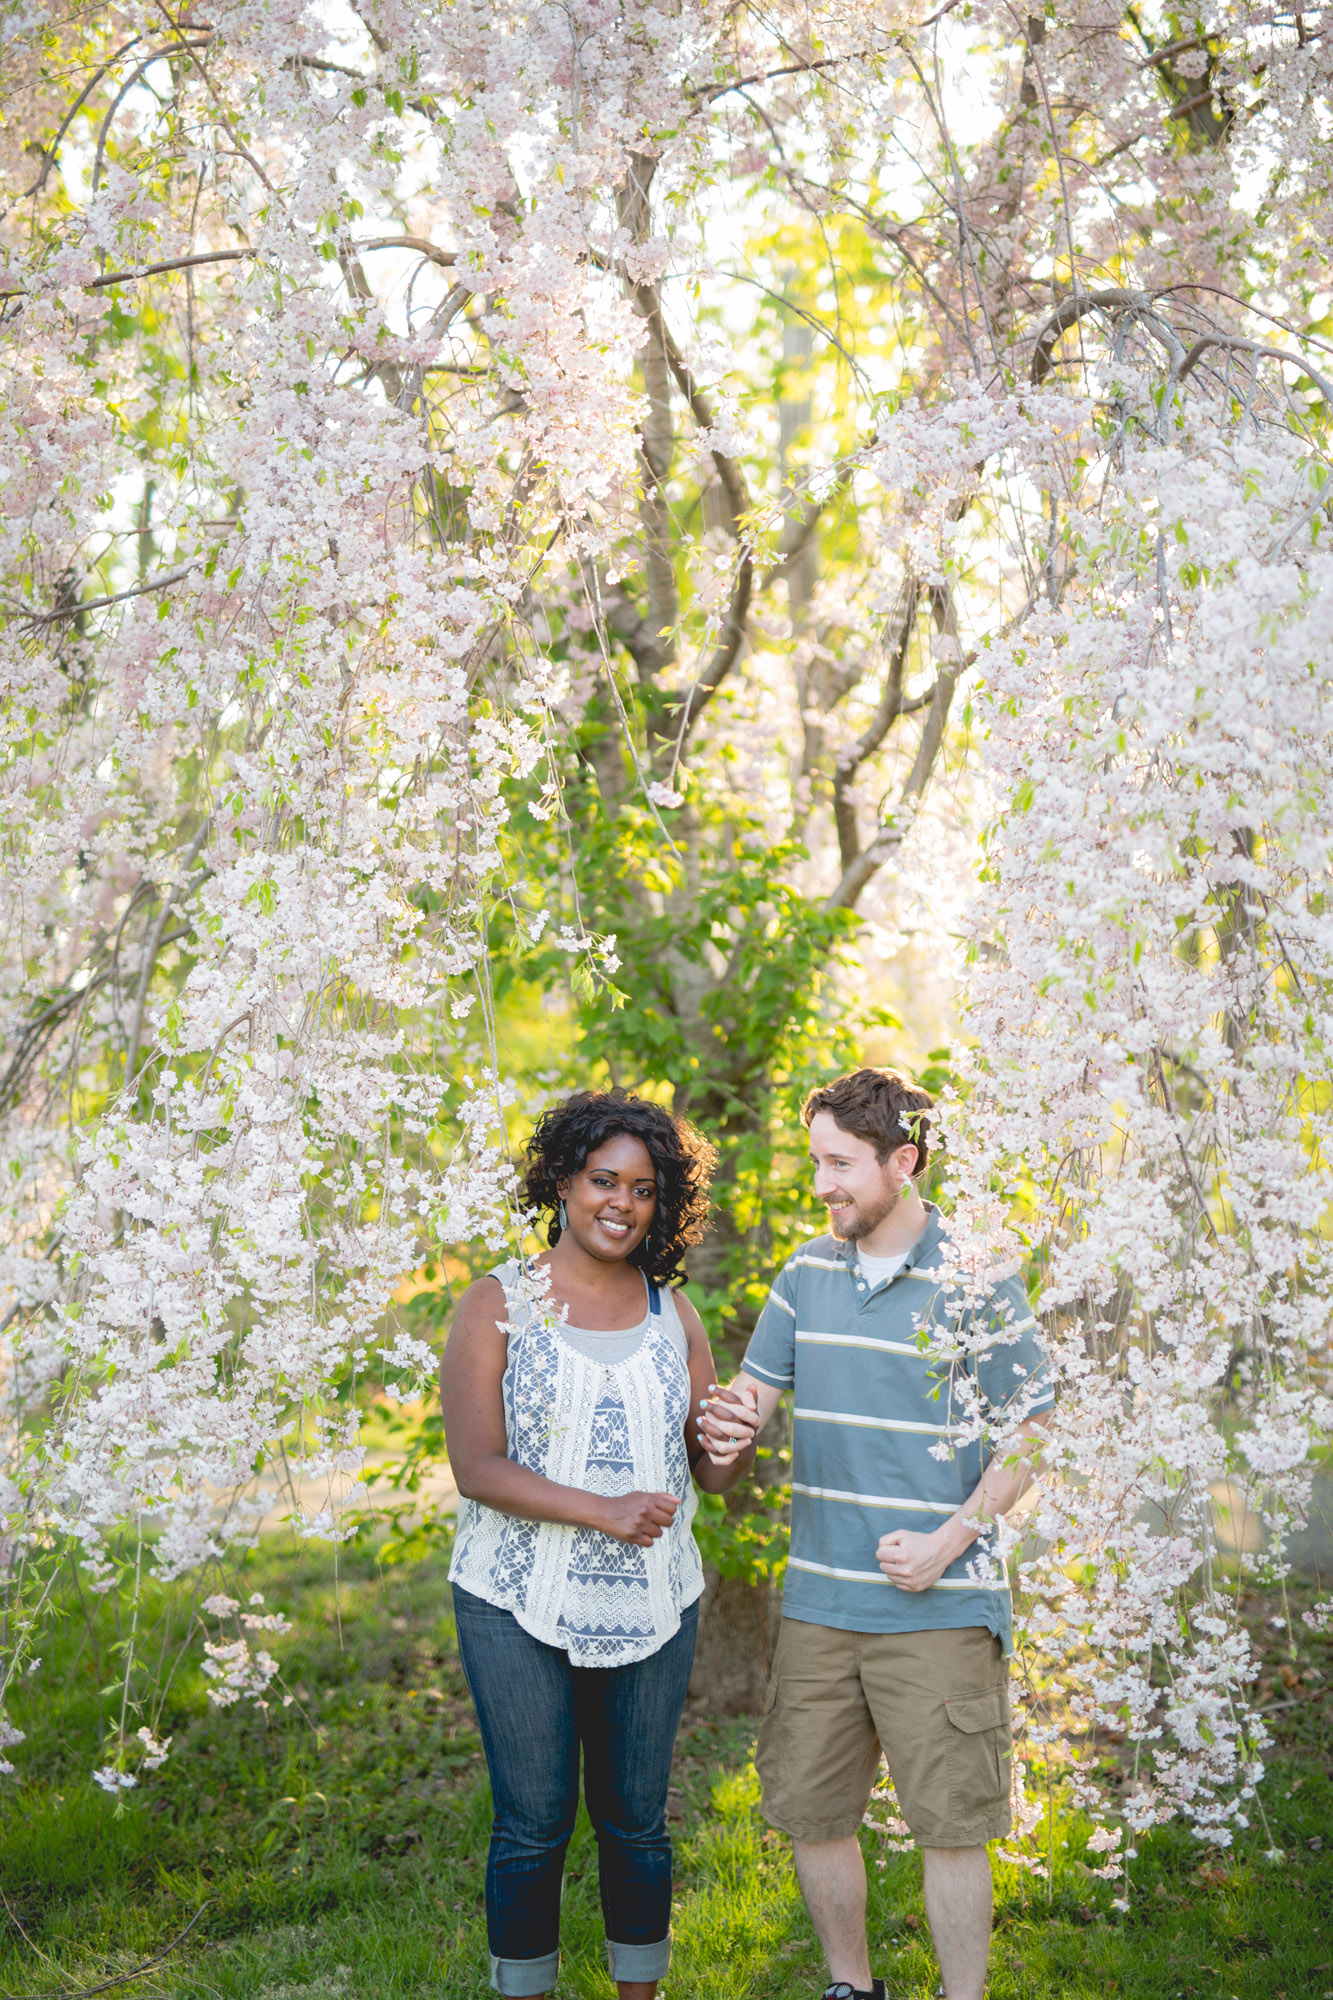 Quakertown Memorial Park Engagement Photos 15